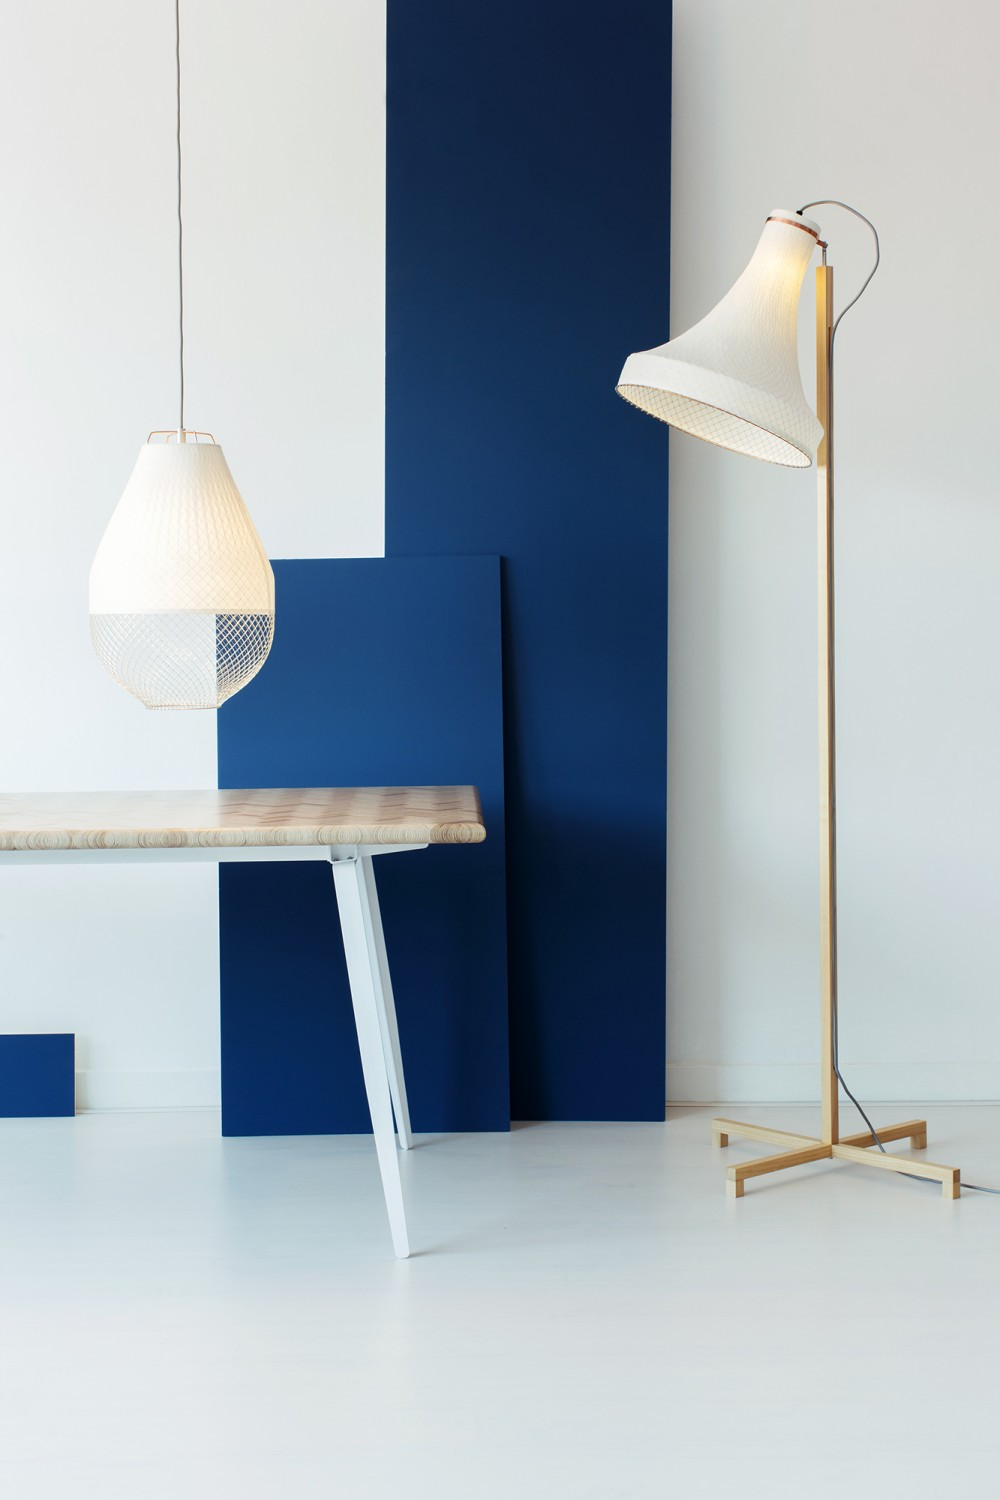 Lightings and Constructed Surface table by Rick Tegelaar |Quick Dose of Inspiration #43 | Flodeau.com